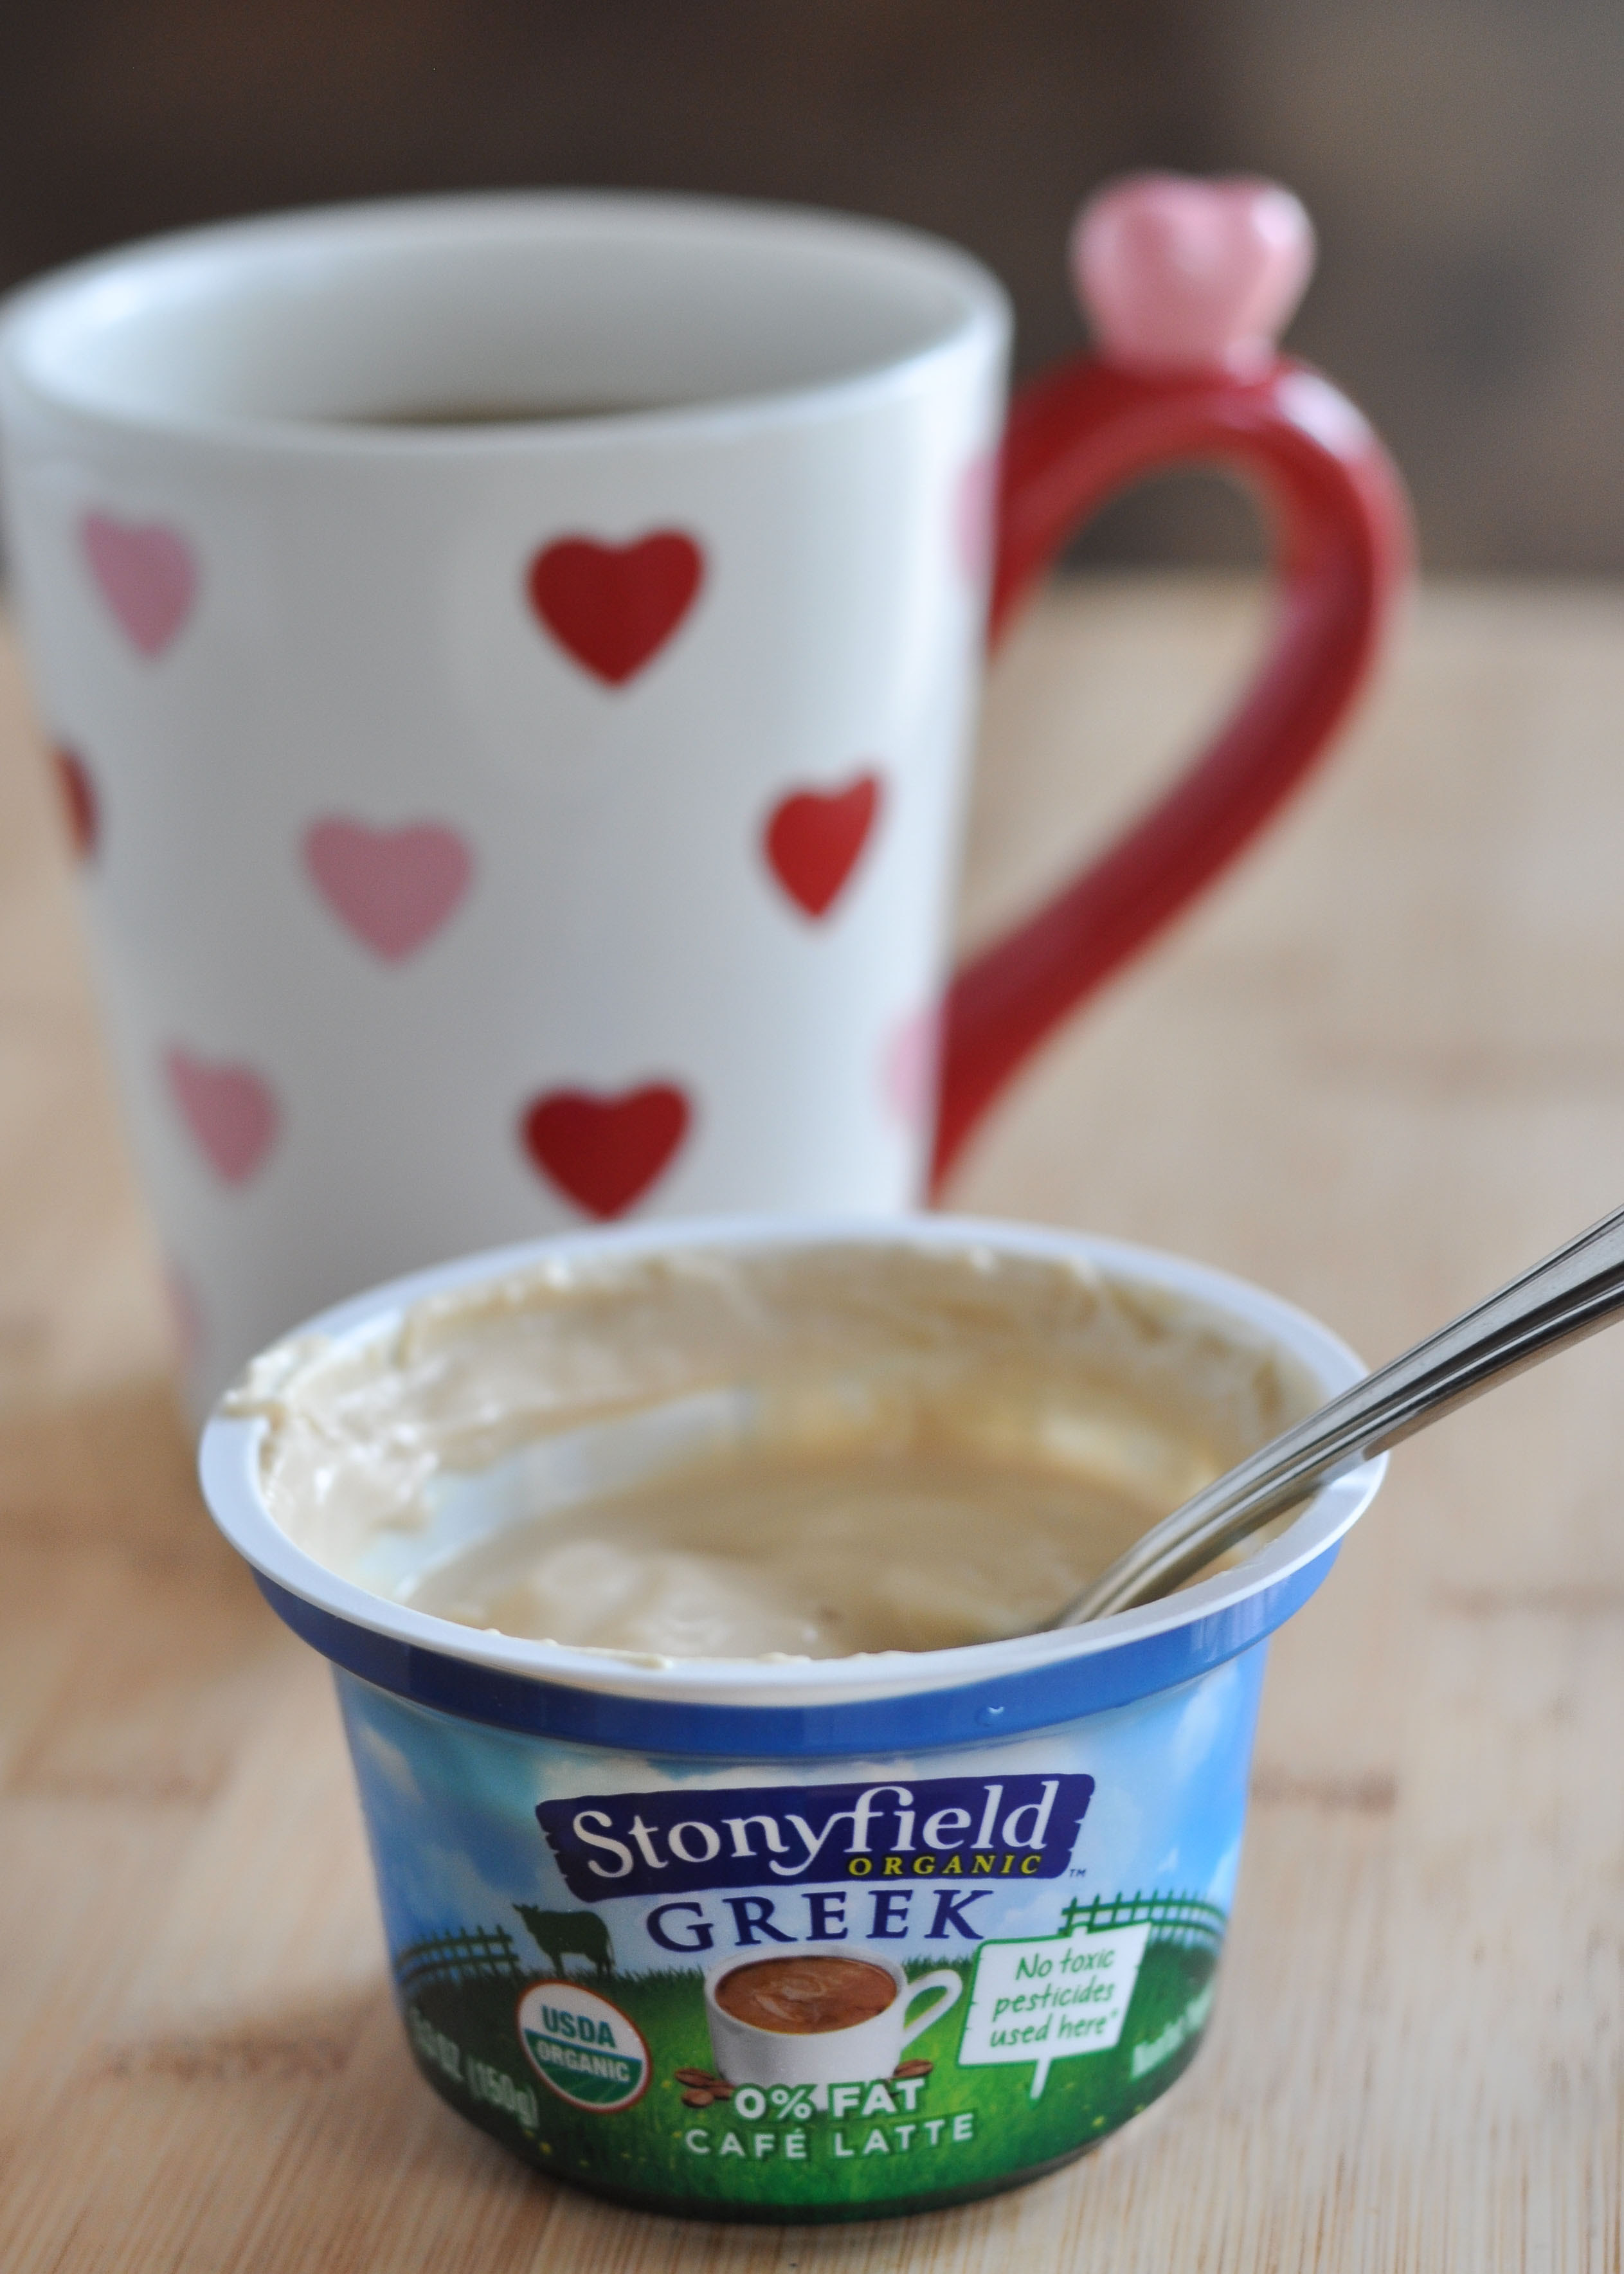 Stonyfield+-1 - Nutritious Eats